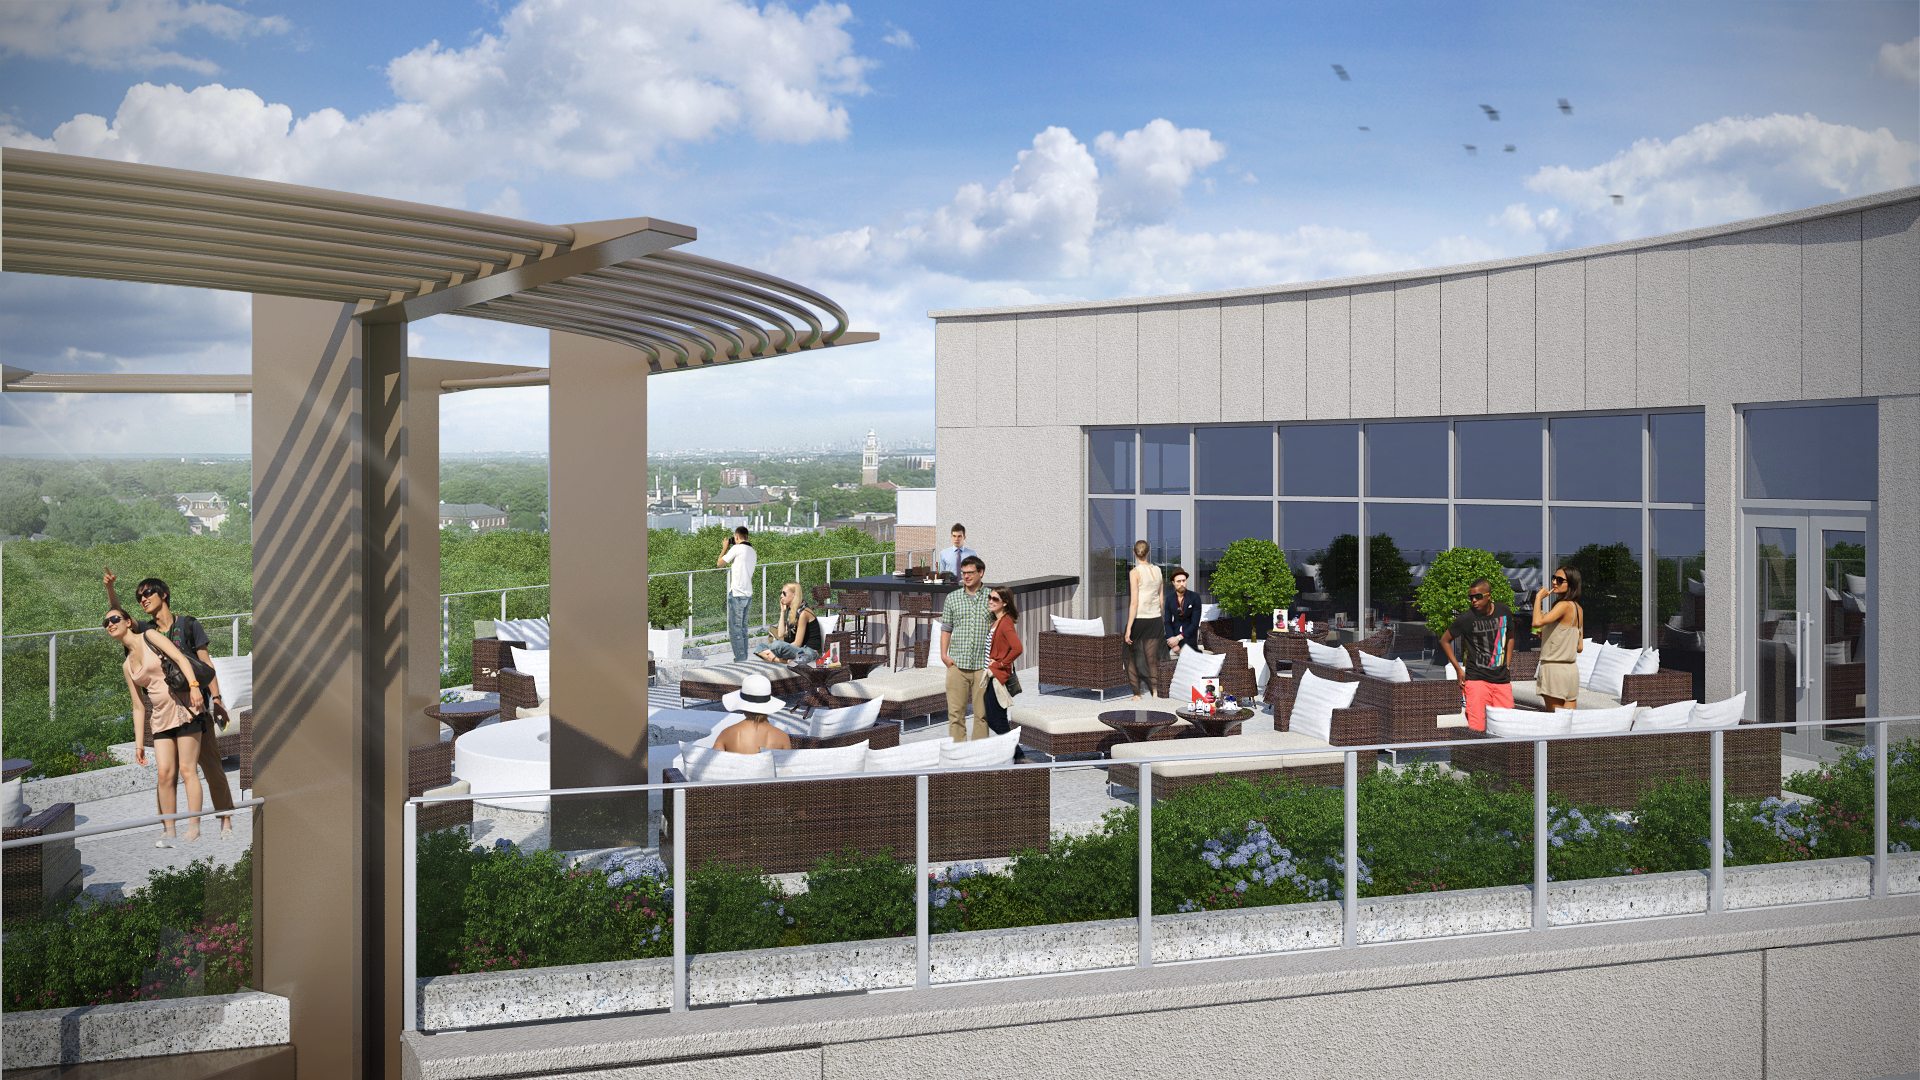 Rendering of the east view from the rooftop bar at The MC hotel in Montclair. Credit: BOGZA